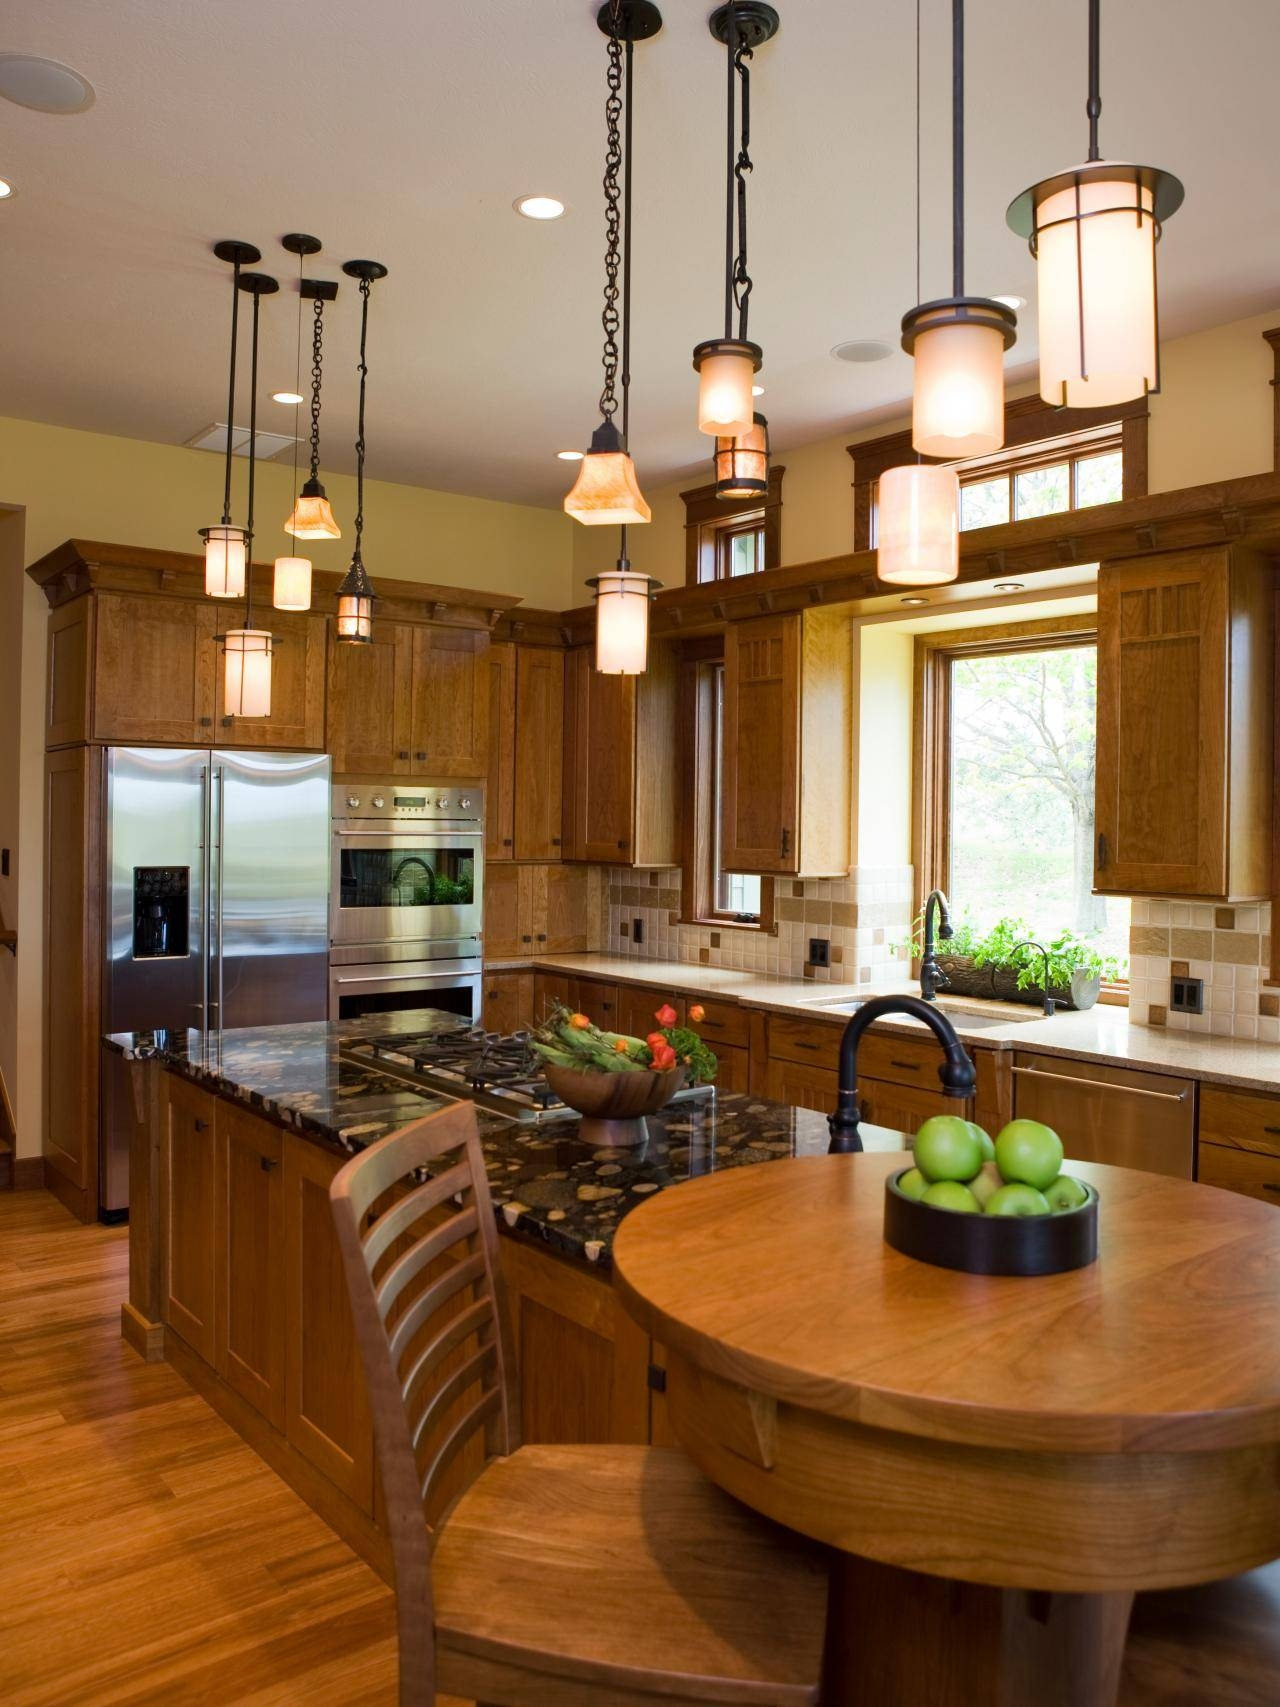 15 s Orange Pendant Lights for Kitchen